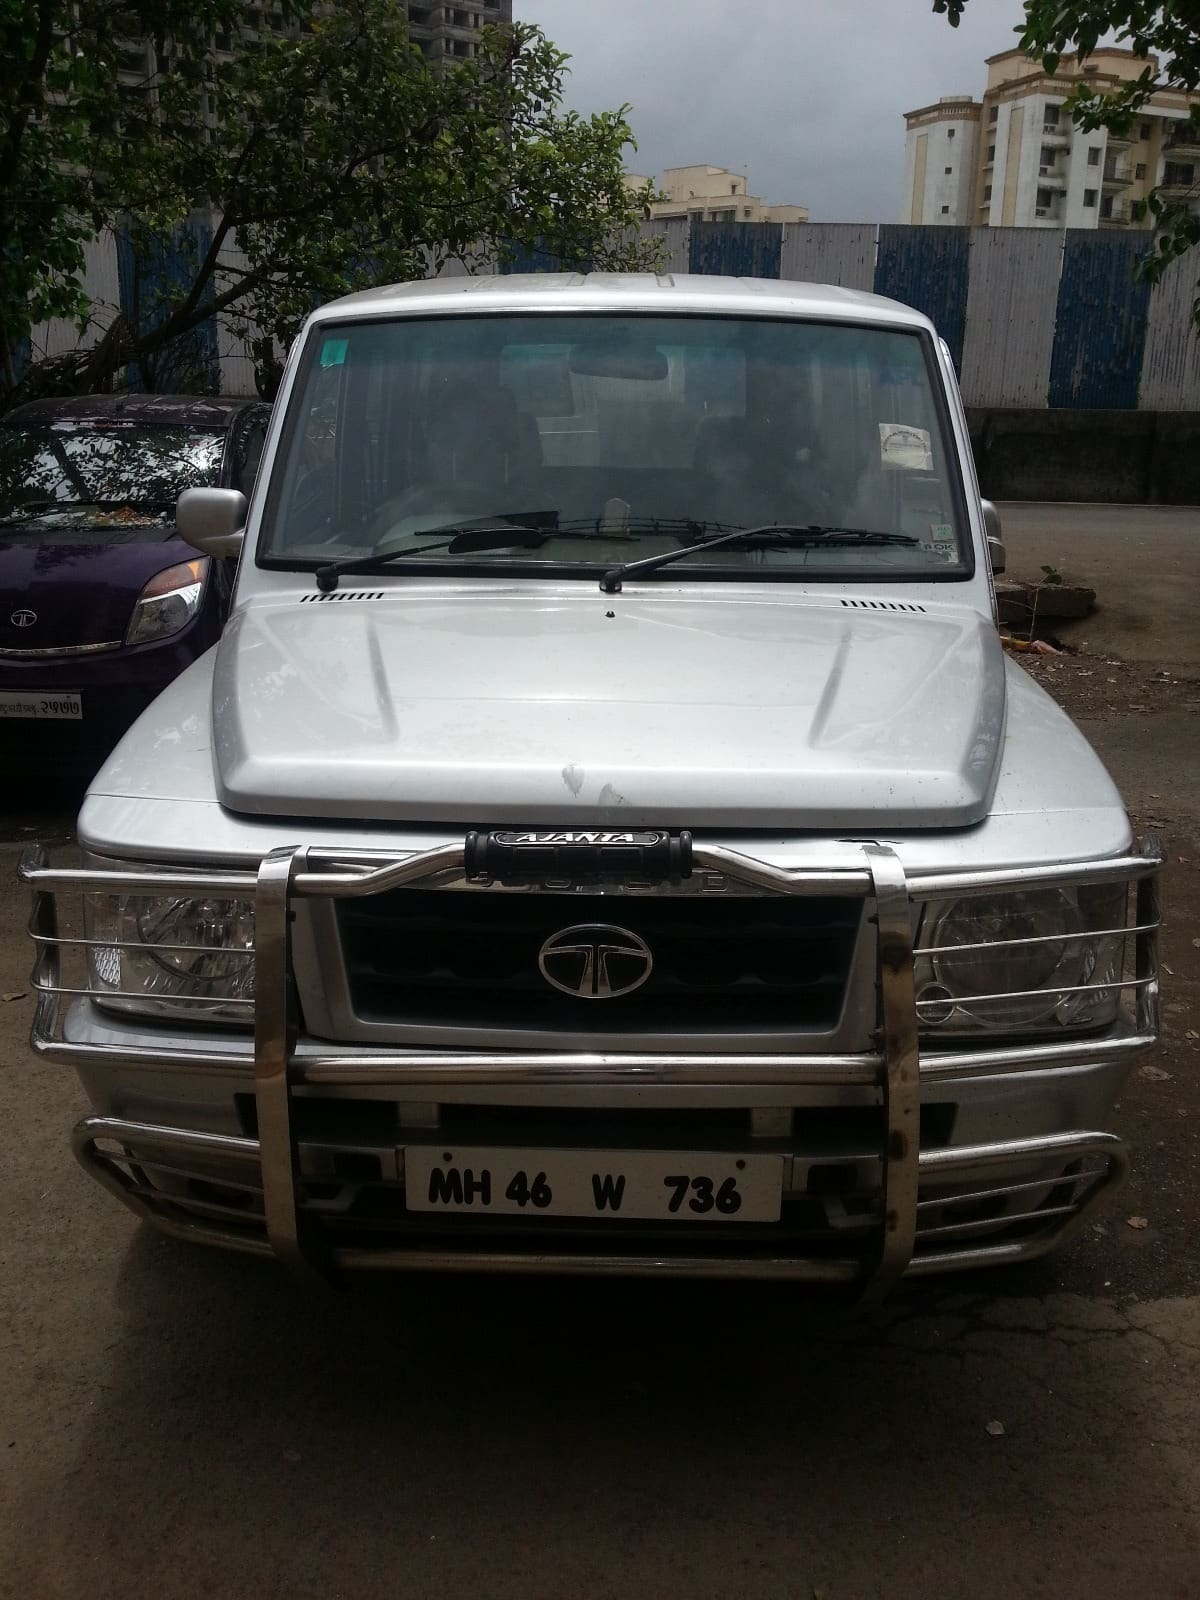 Used Tata Sumo Gold EX (Id-929698) Car in Mumbai